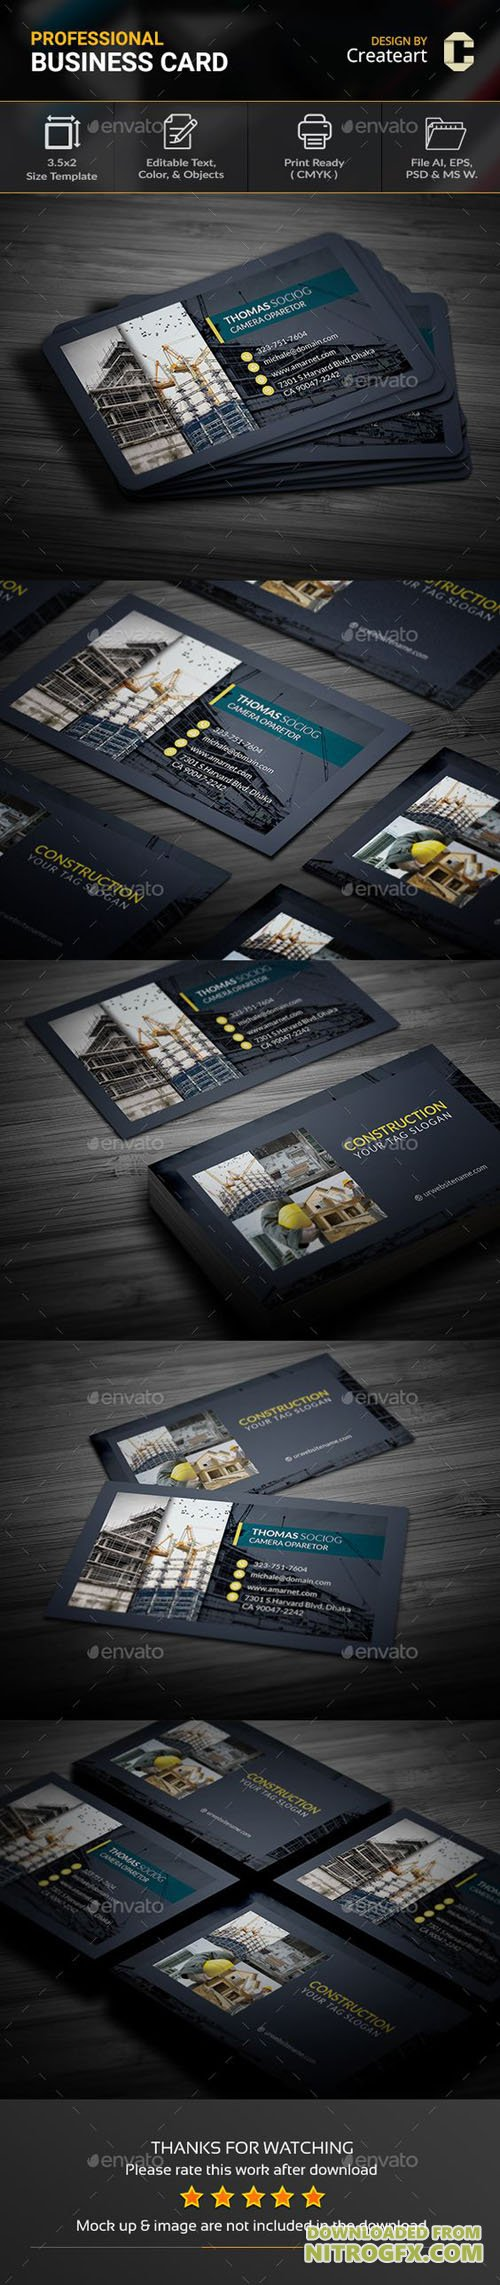 GraphicRiver - Business Card 20446377